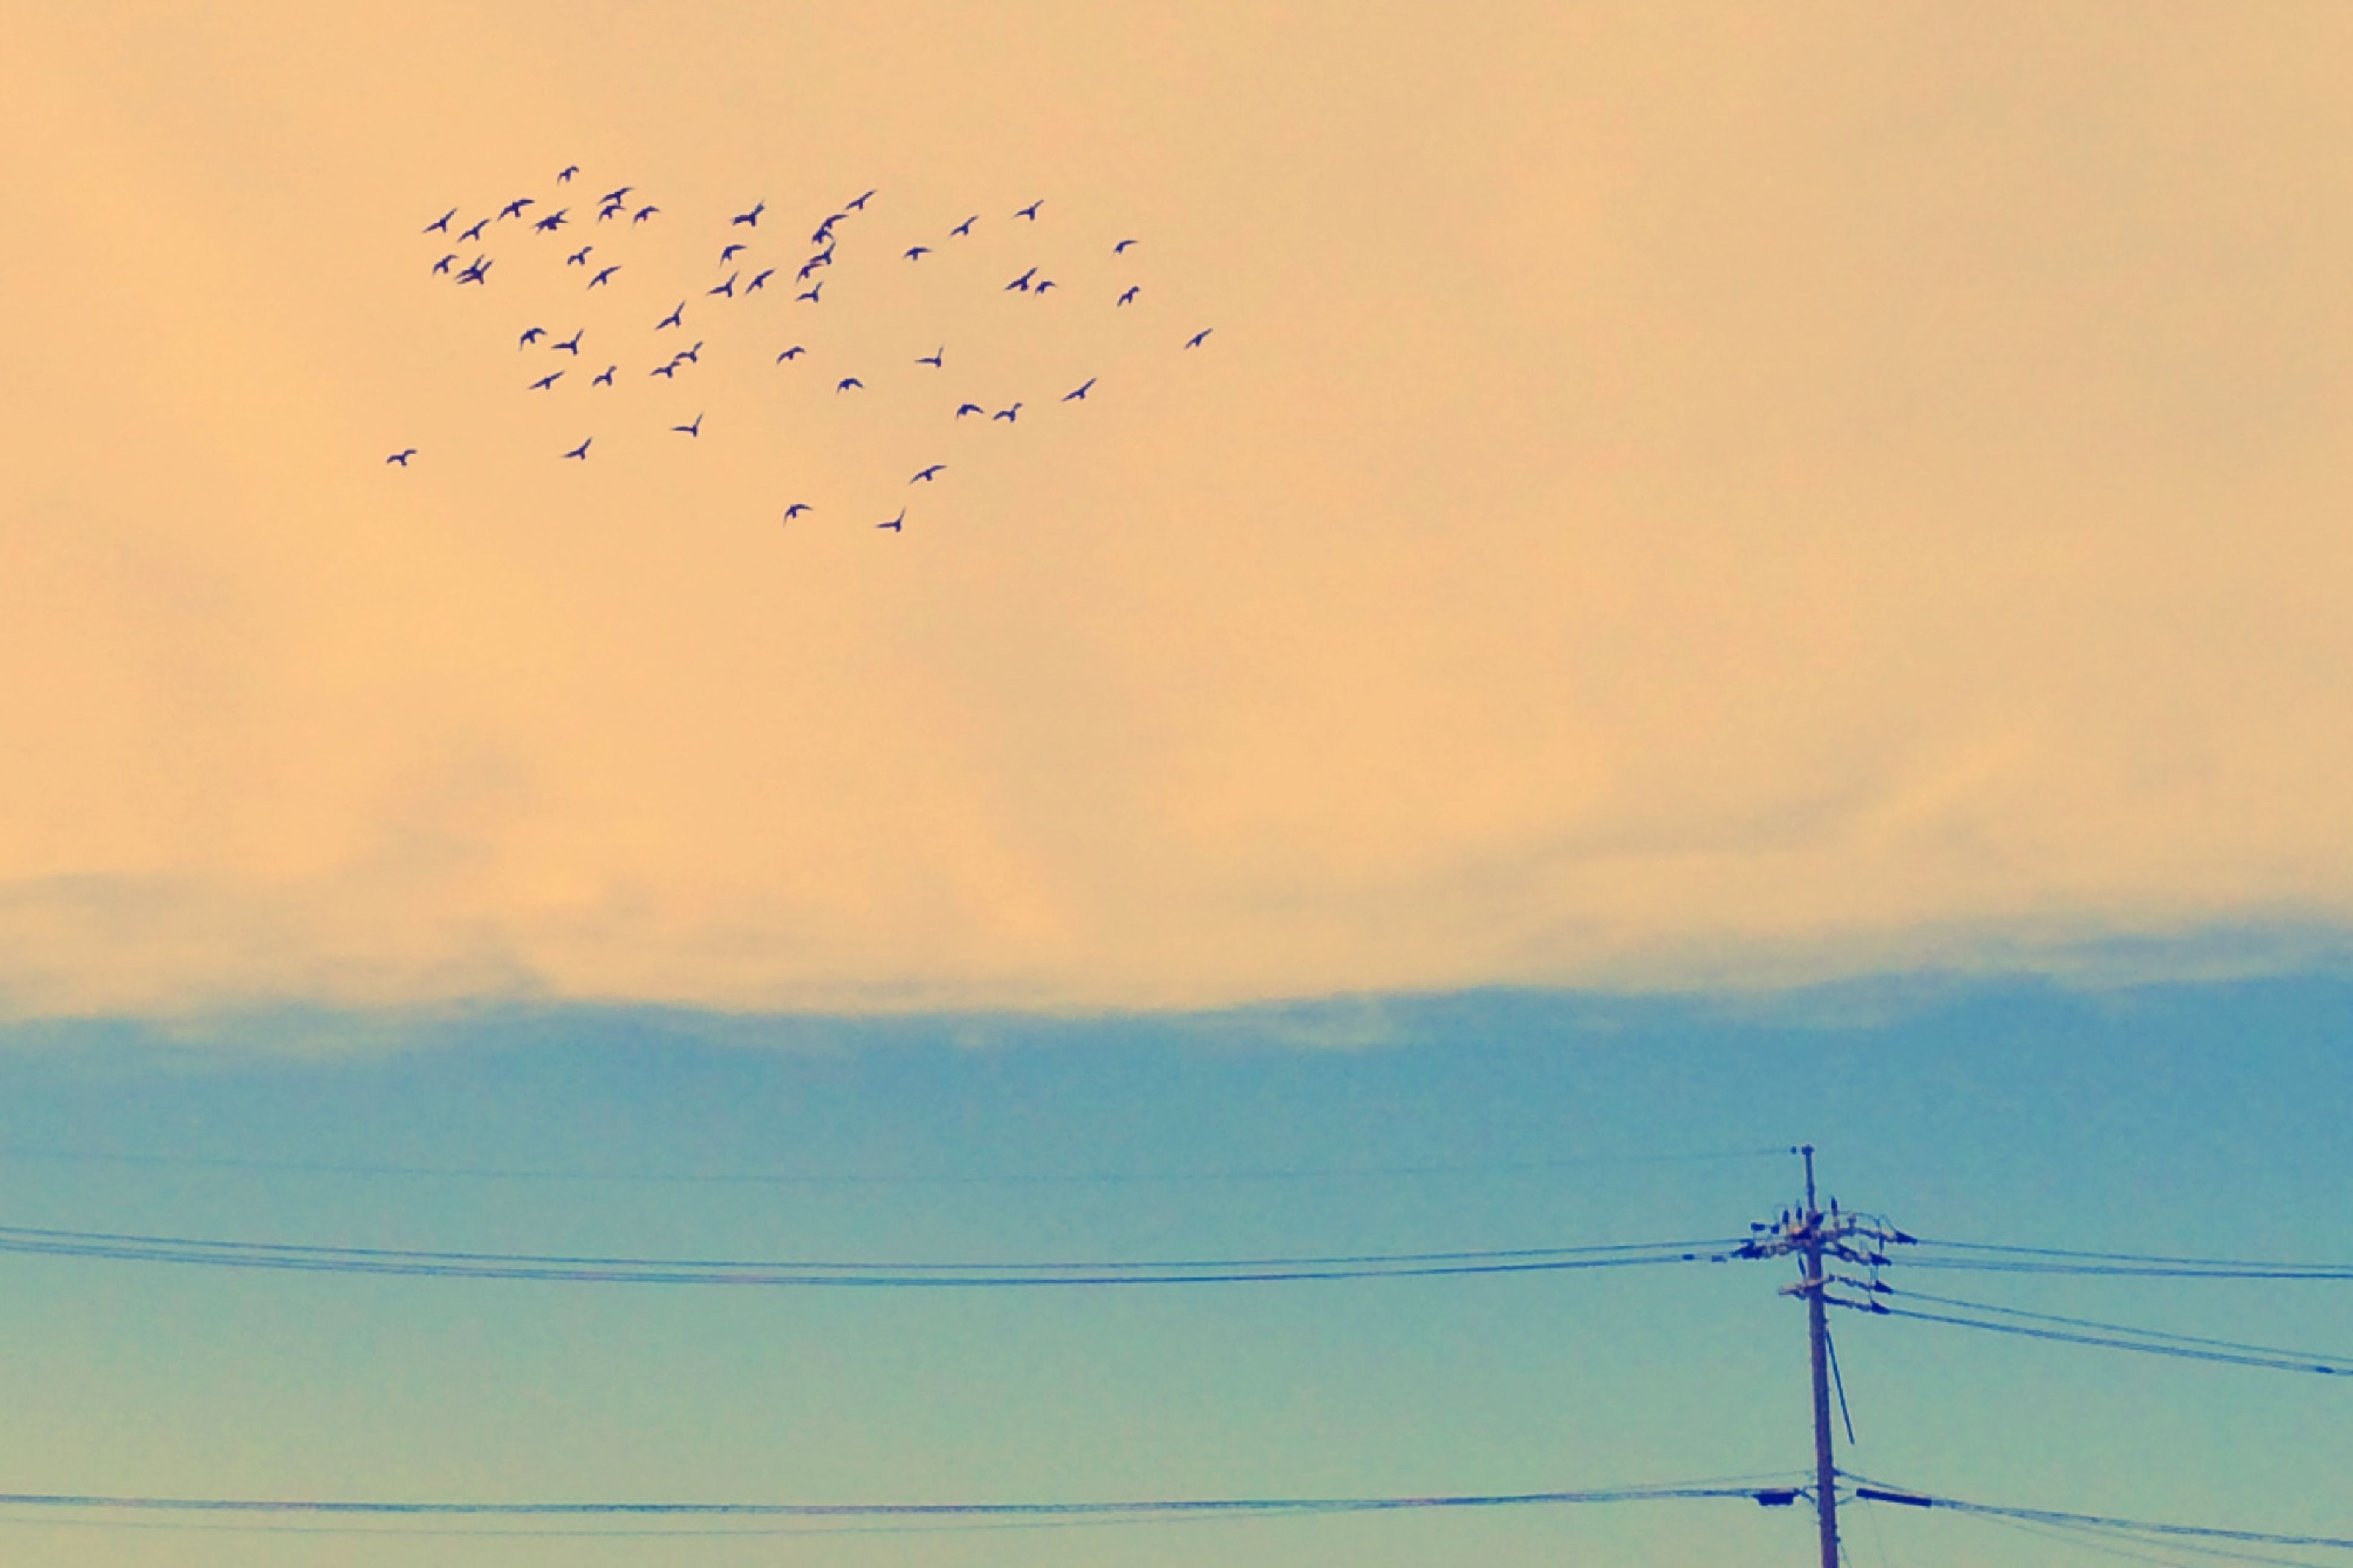 bird, low angle view, animal themes, flying, animals in the wild, wildlife, silhouette, power line, flock of birds, sky, sunset, fuel and power generation, cable, connection, technology, electricity, power supply, nature, outdoors